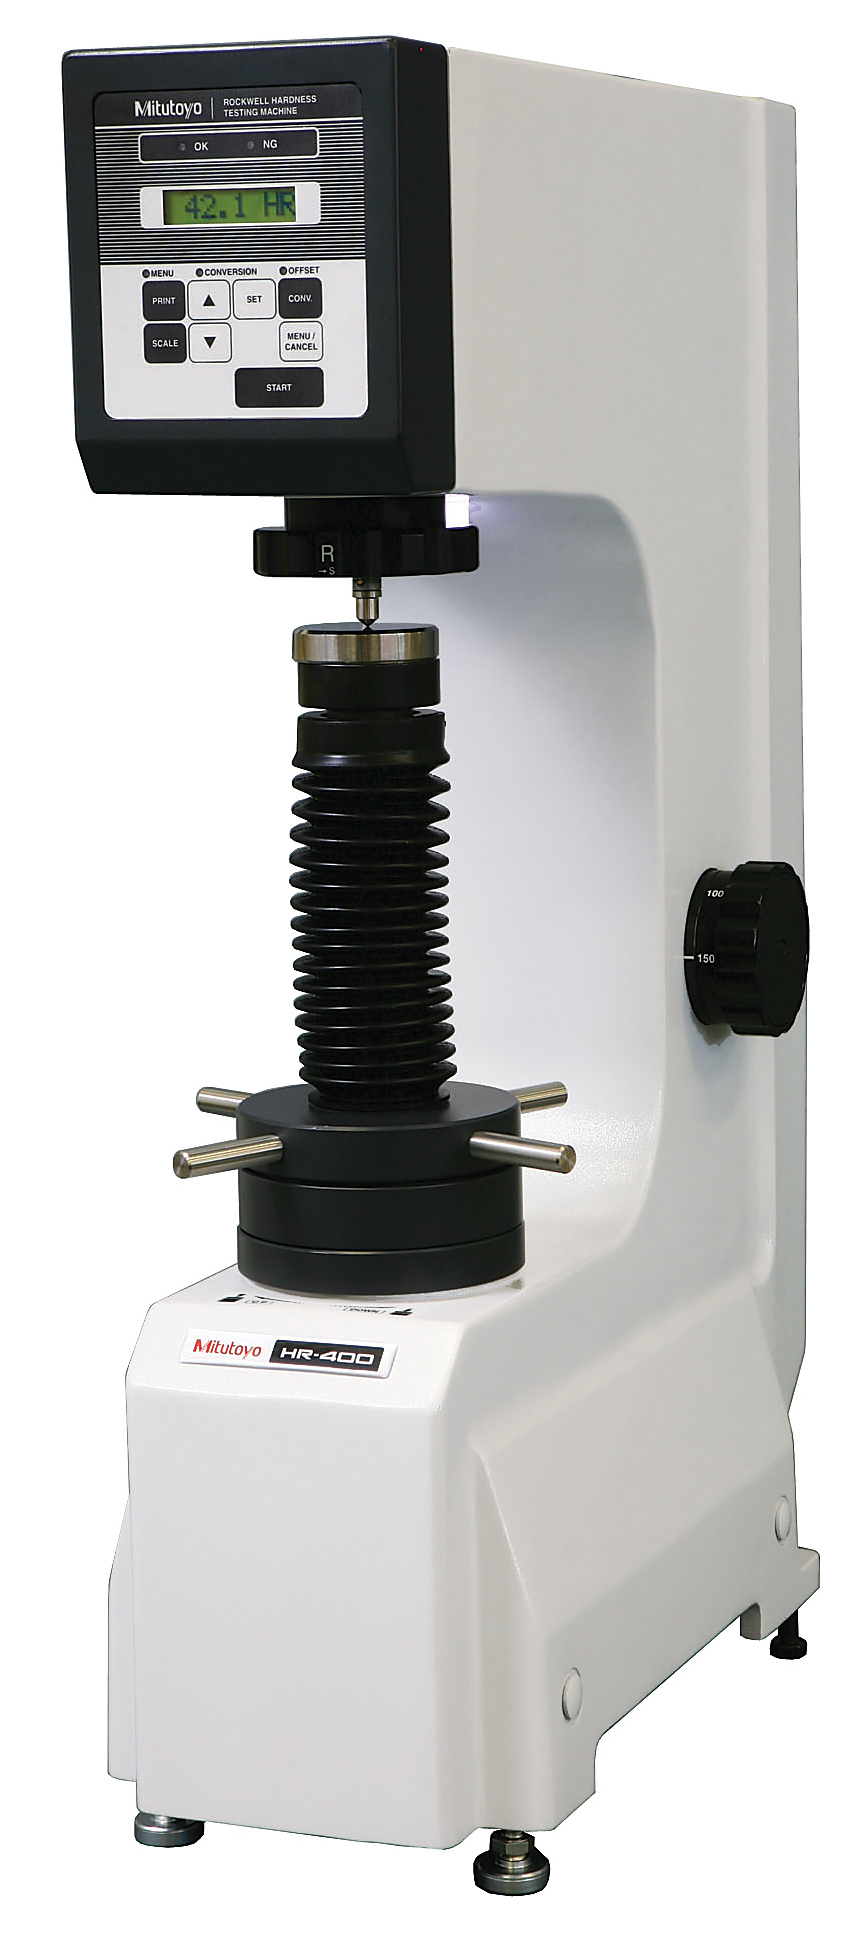 Mitutoyo HR-320MS Rockwell/Rockwell Superficial Hardness Tester